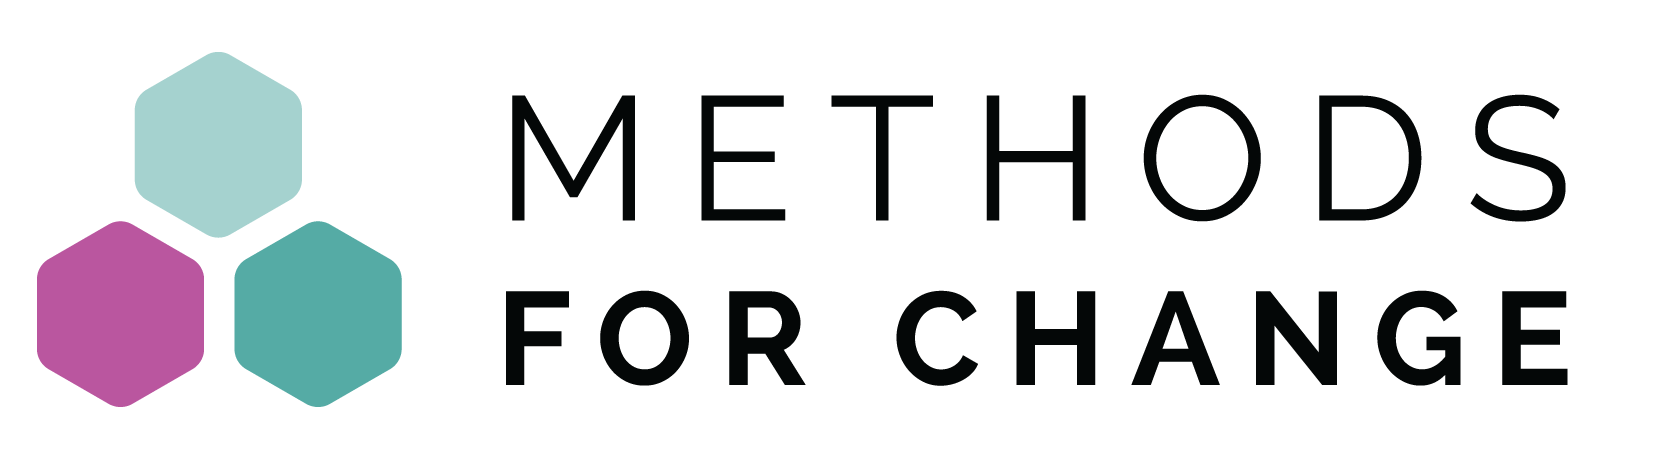 Methods For Change